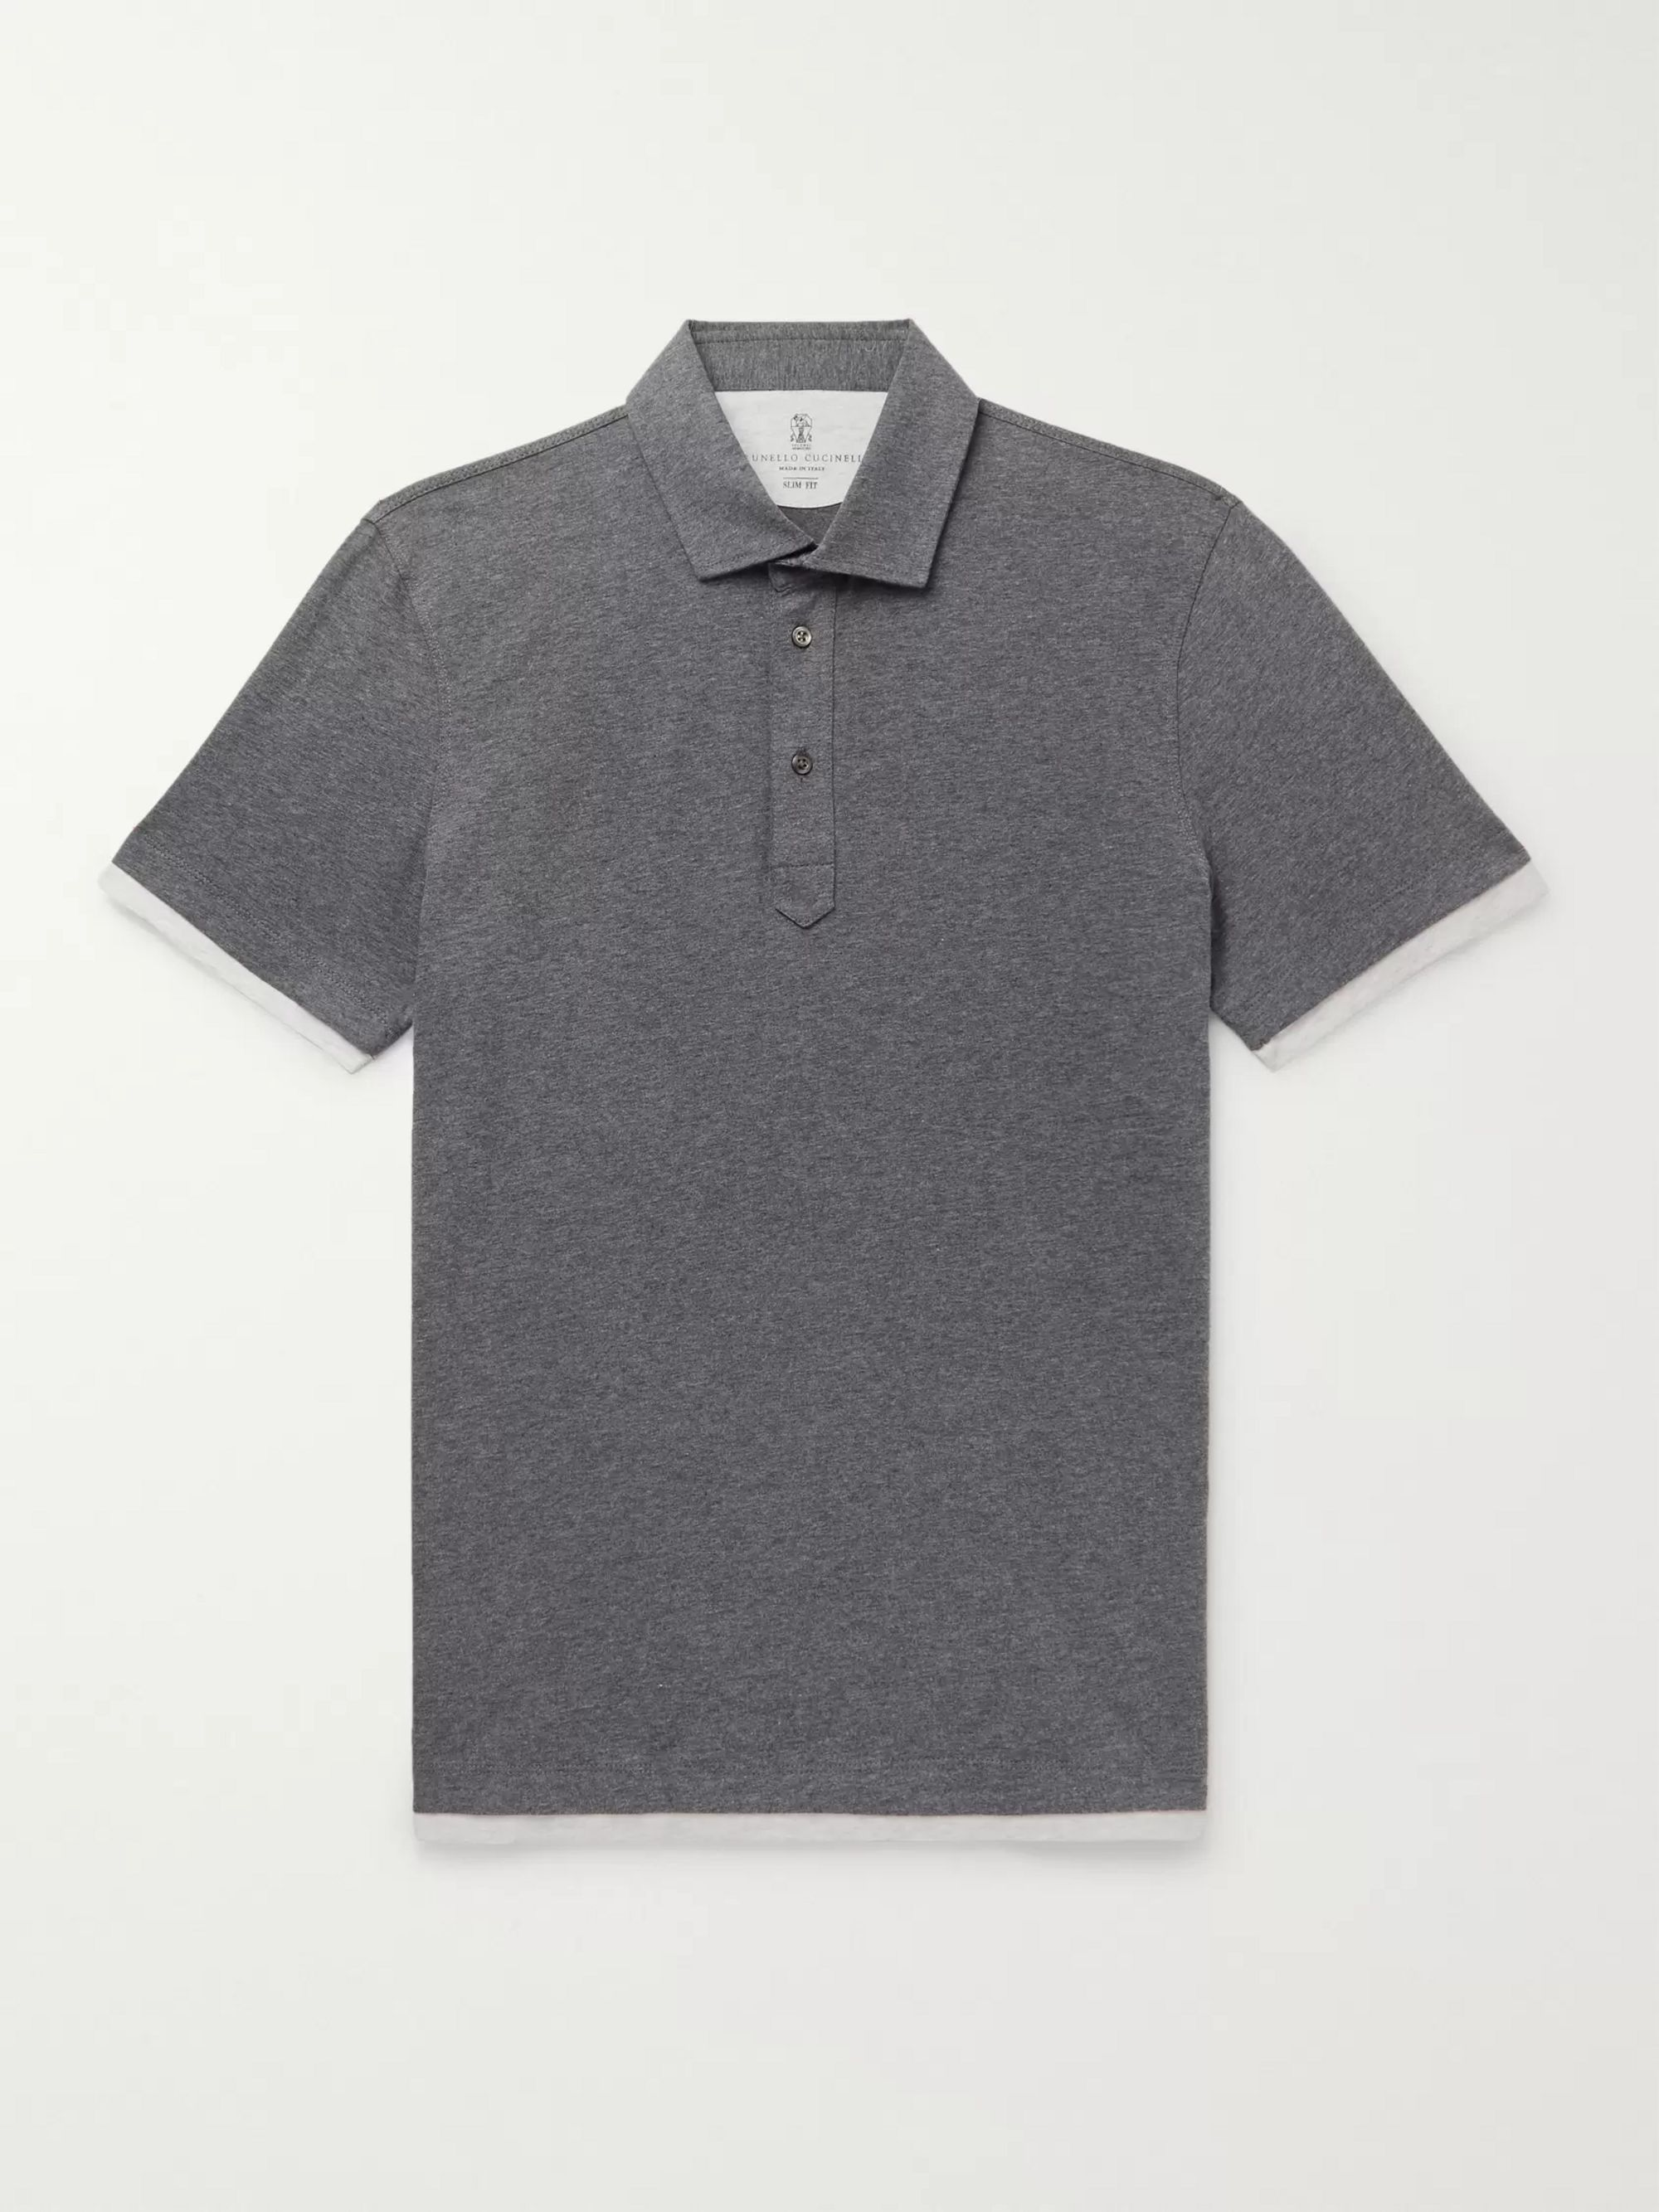 Brunello Cucinelli Slim-Fit Layered Mélange Cotton-Jersey Polo Shirt